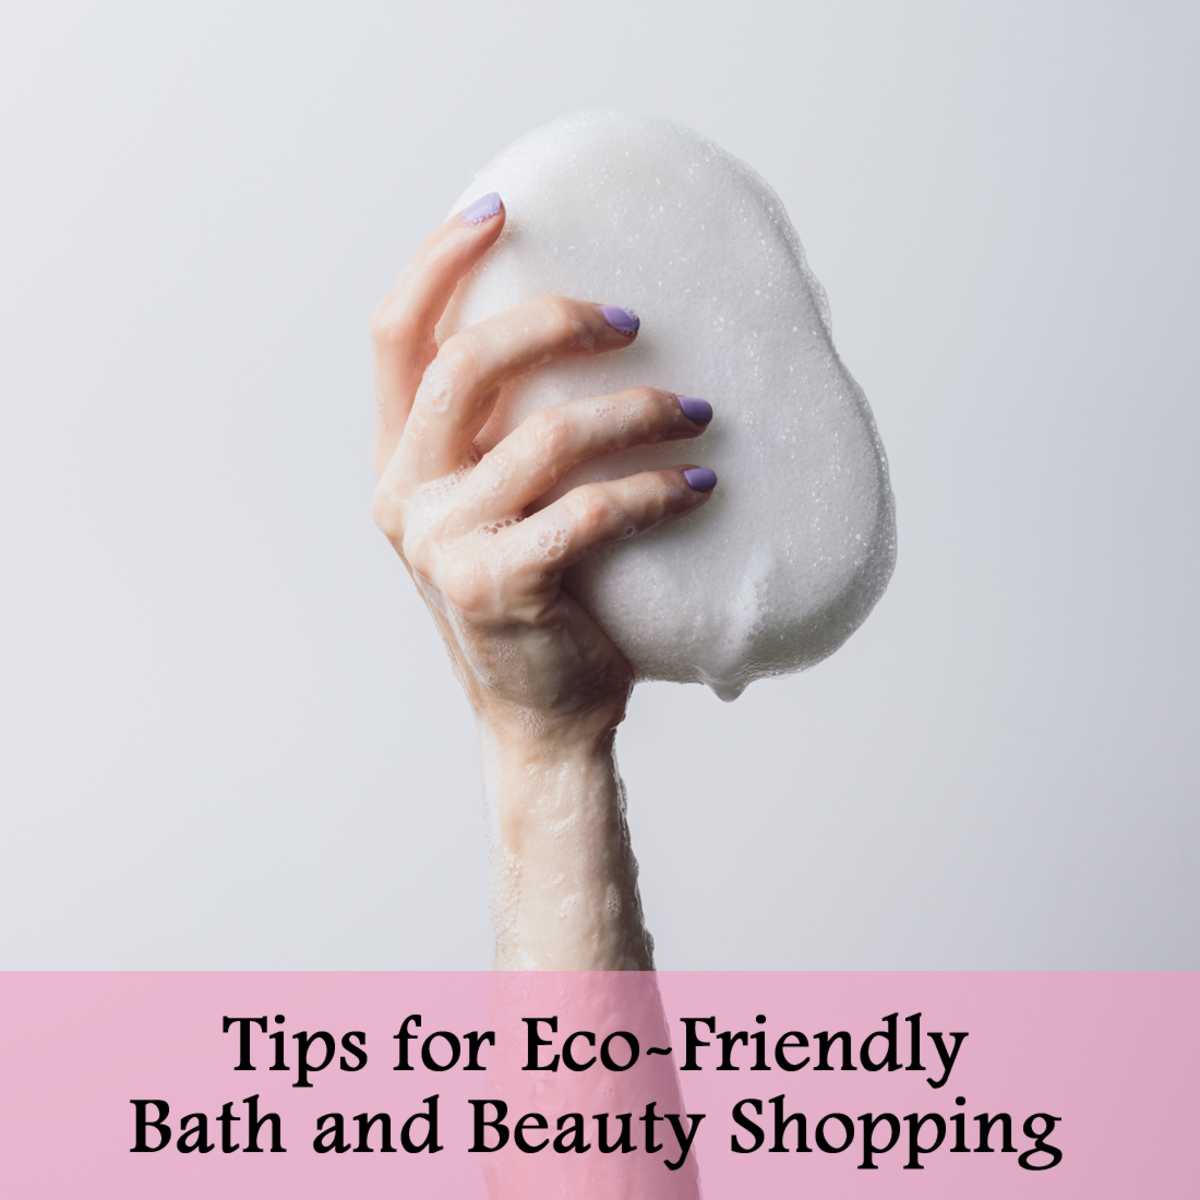 tips for eco-friendly bath and beauty shopping